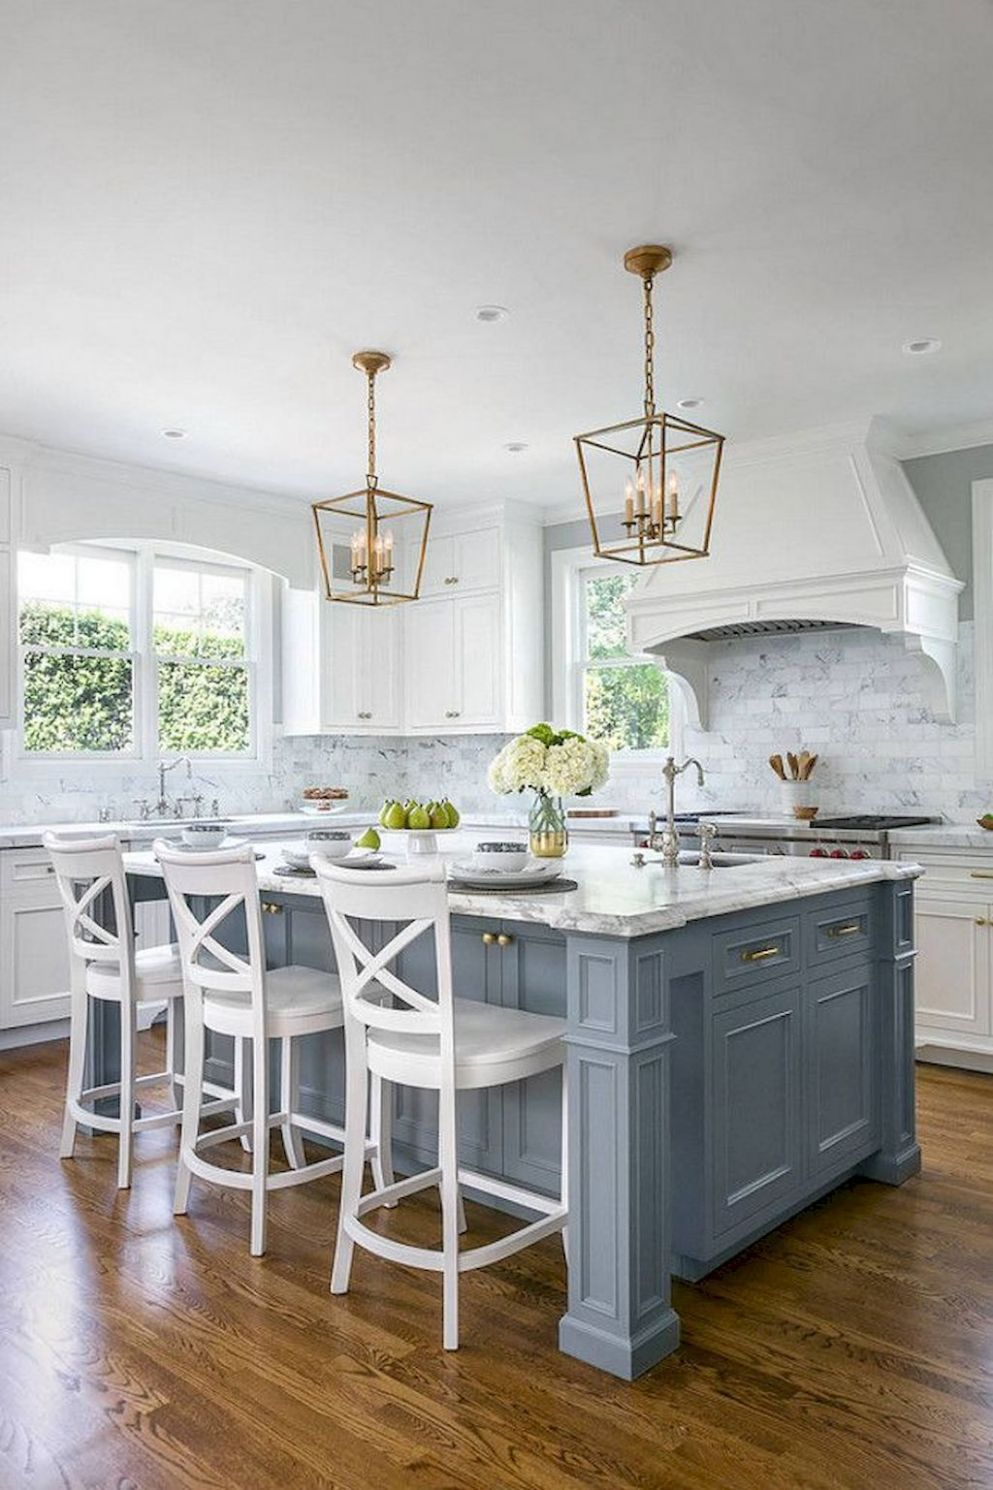 The windows on either side of the range hood add symmetry and ..